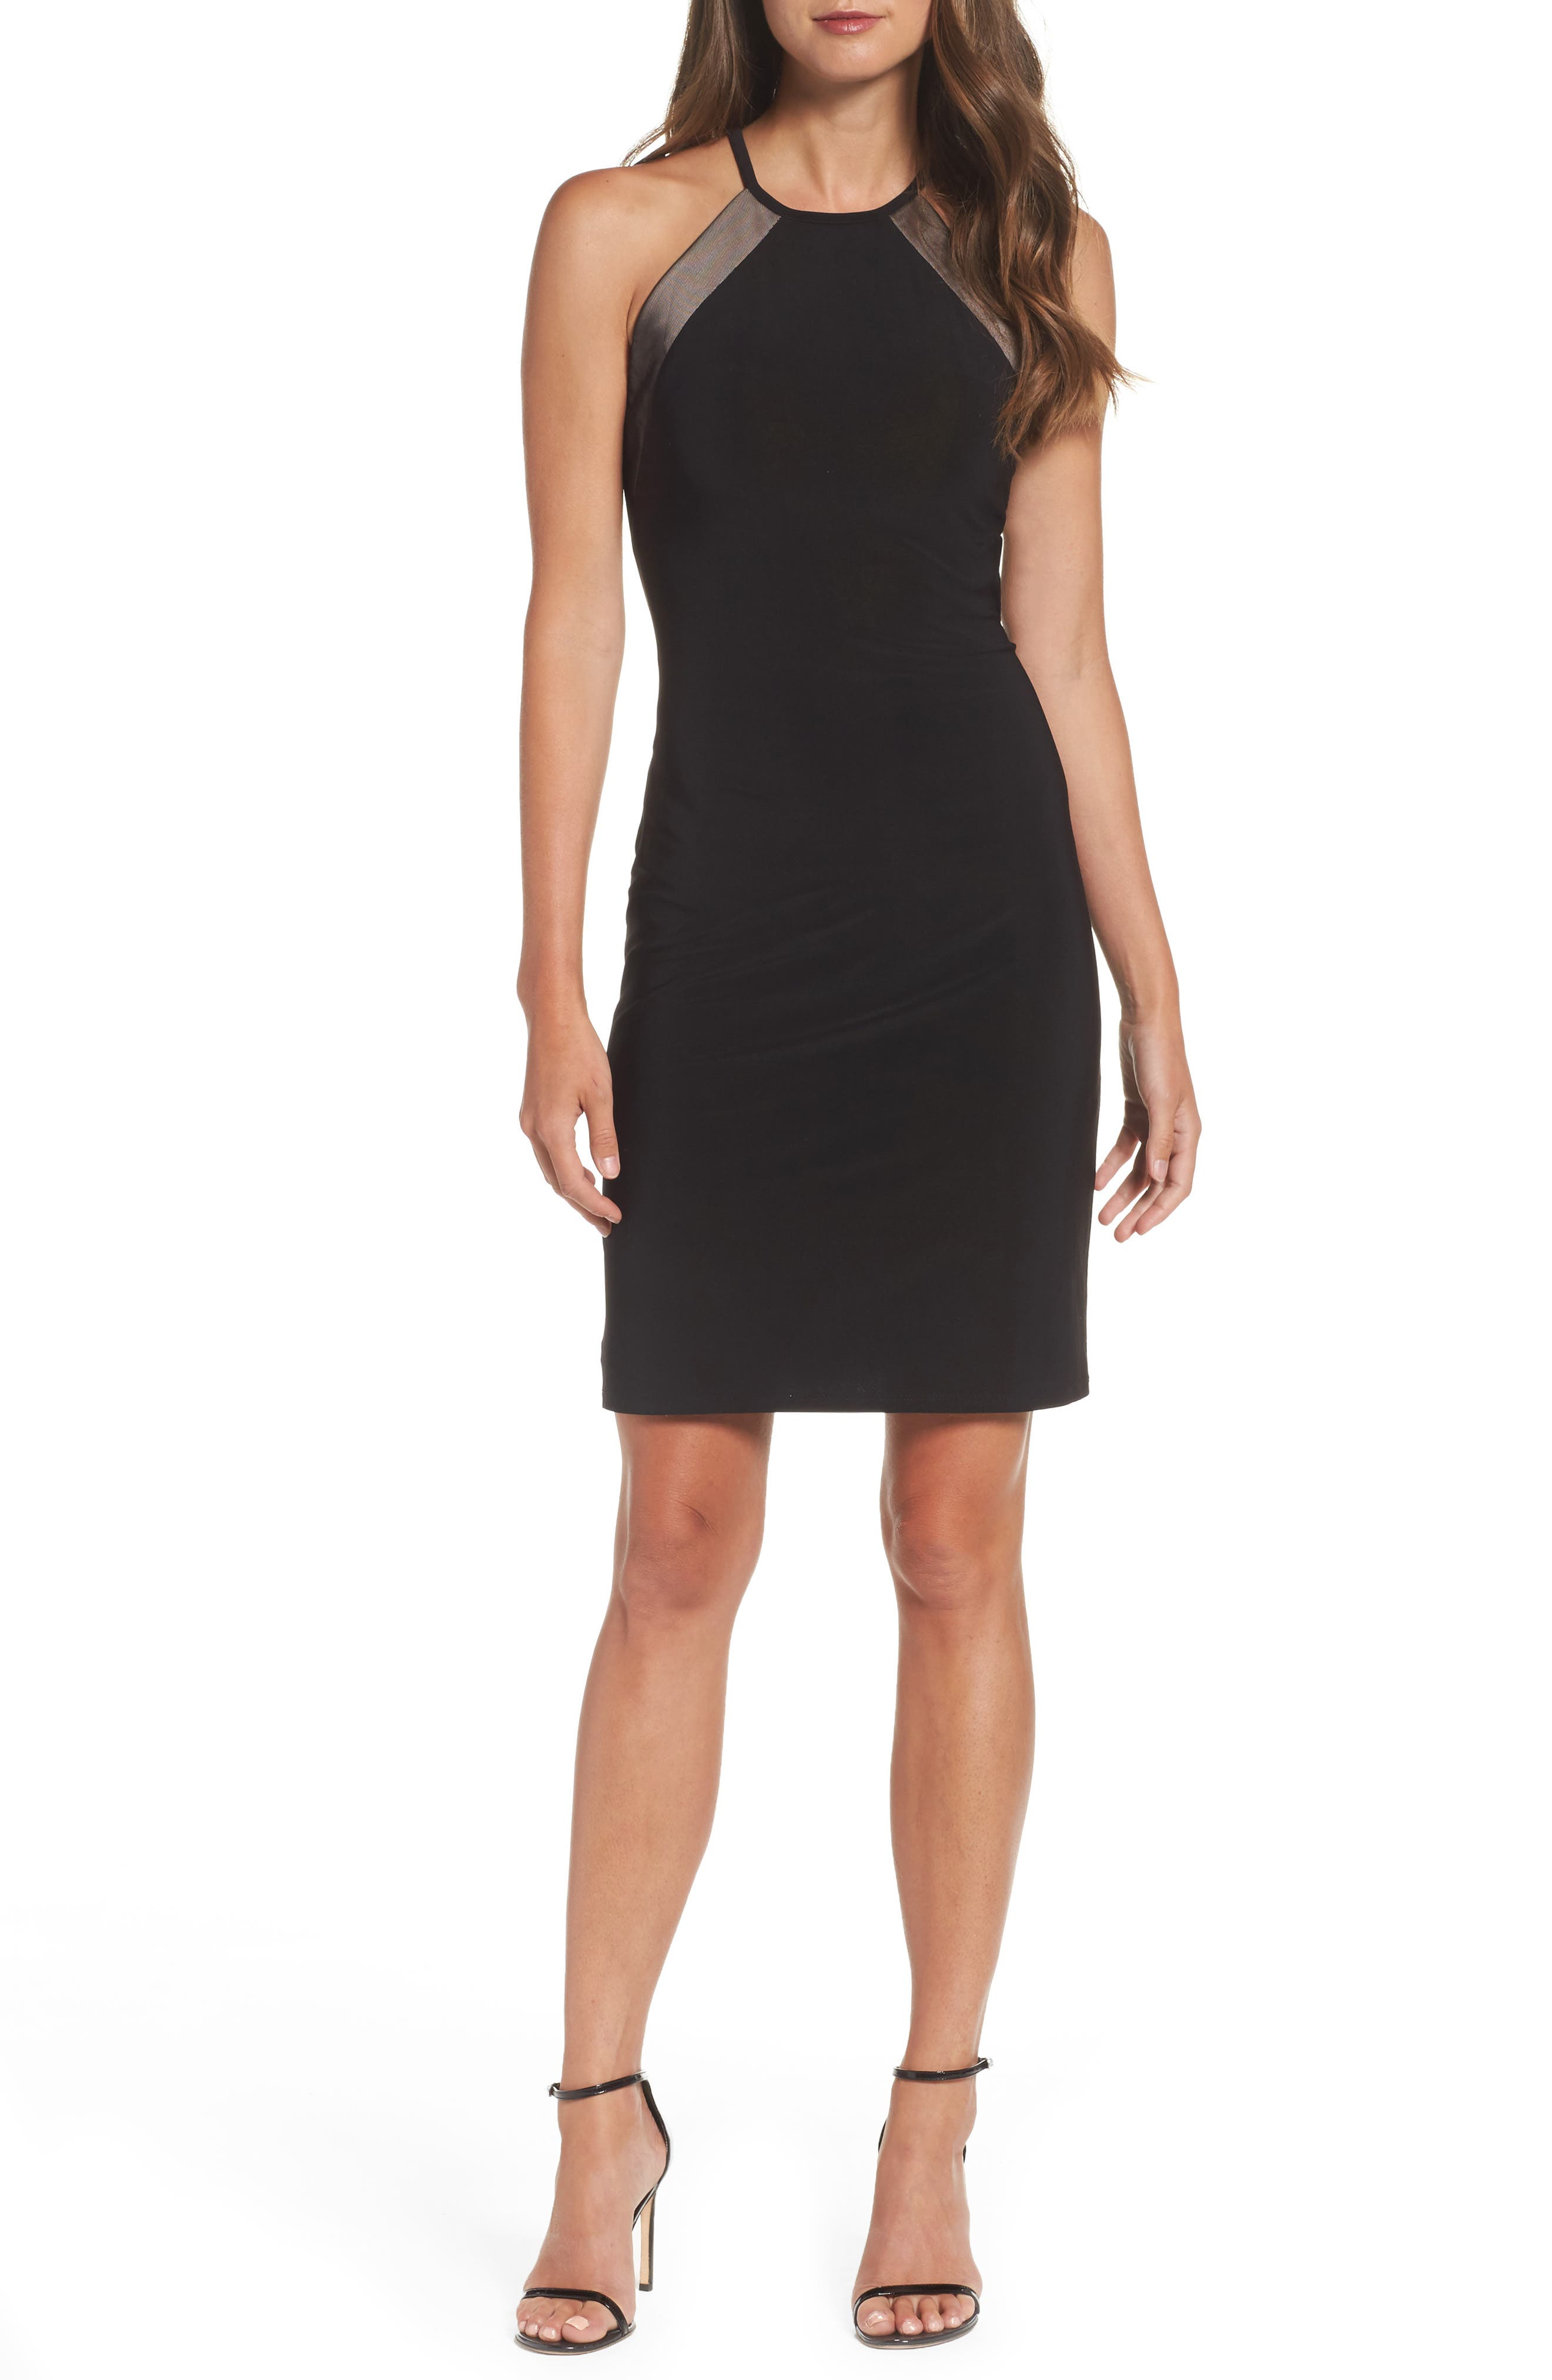 Willus Sheath Dress,                         Main,                         color, Black/ Nude